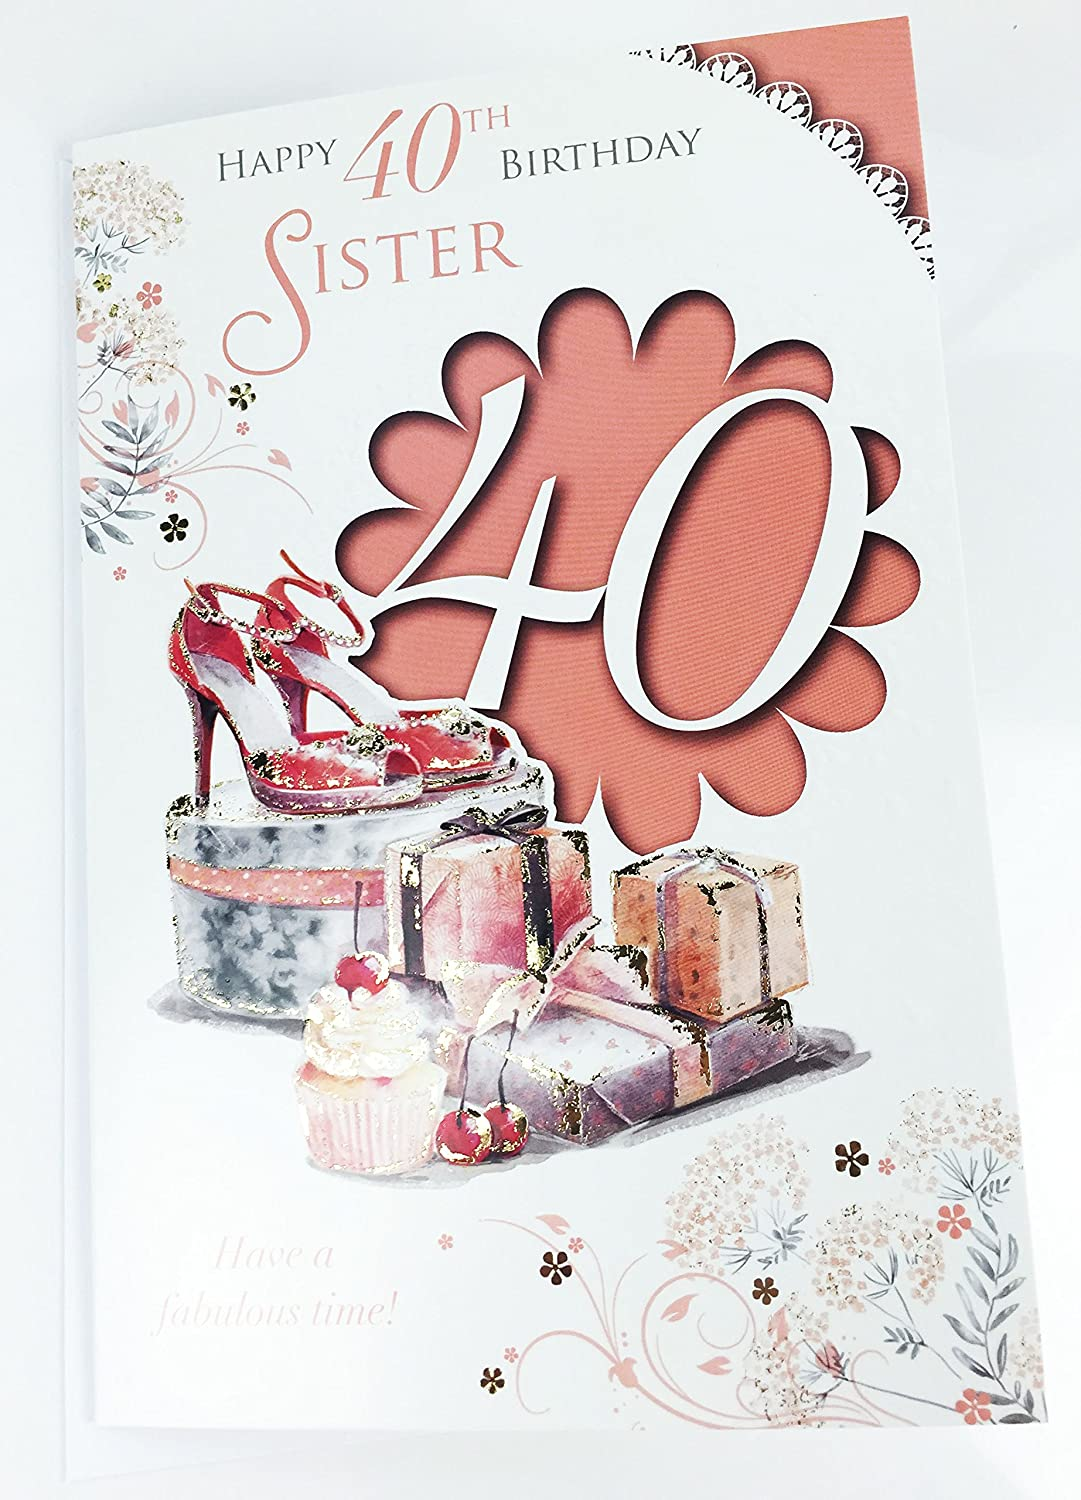 Sister 40th birthday card large greeting card for age 40 quality sister 40th birthday card large greeting card for age 40 quality birthday amazon office products kristyandbryce Image collections